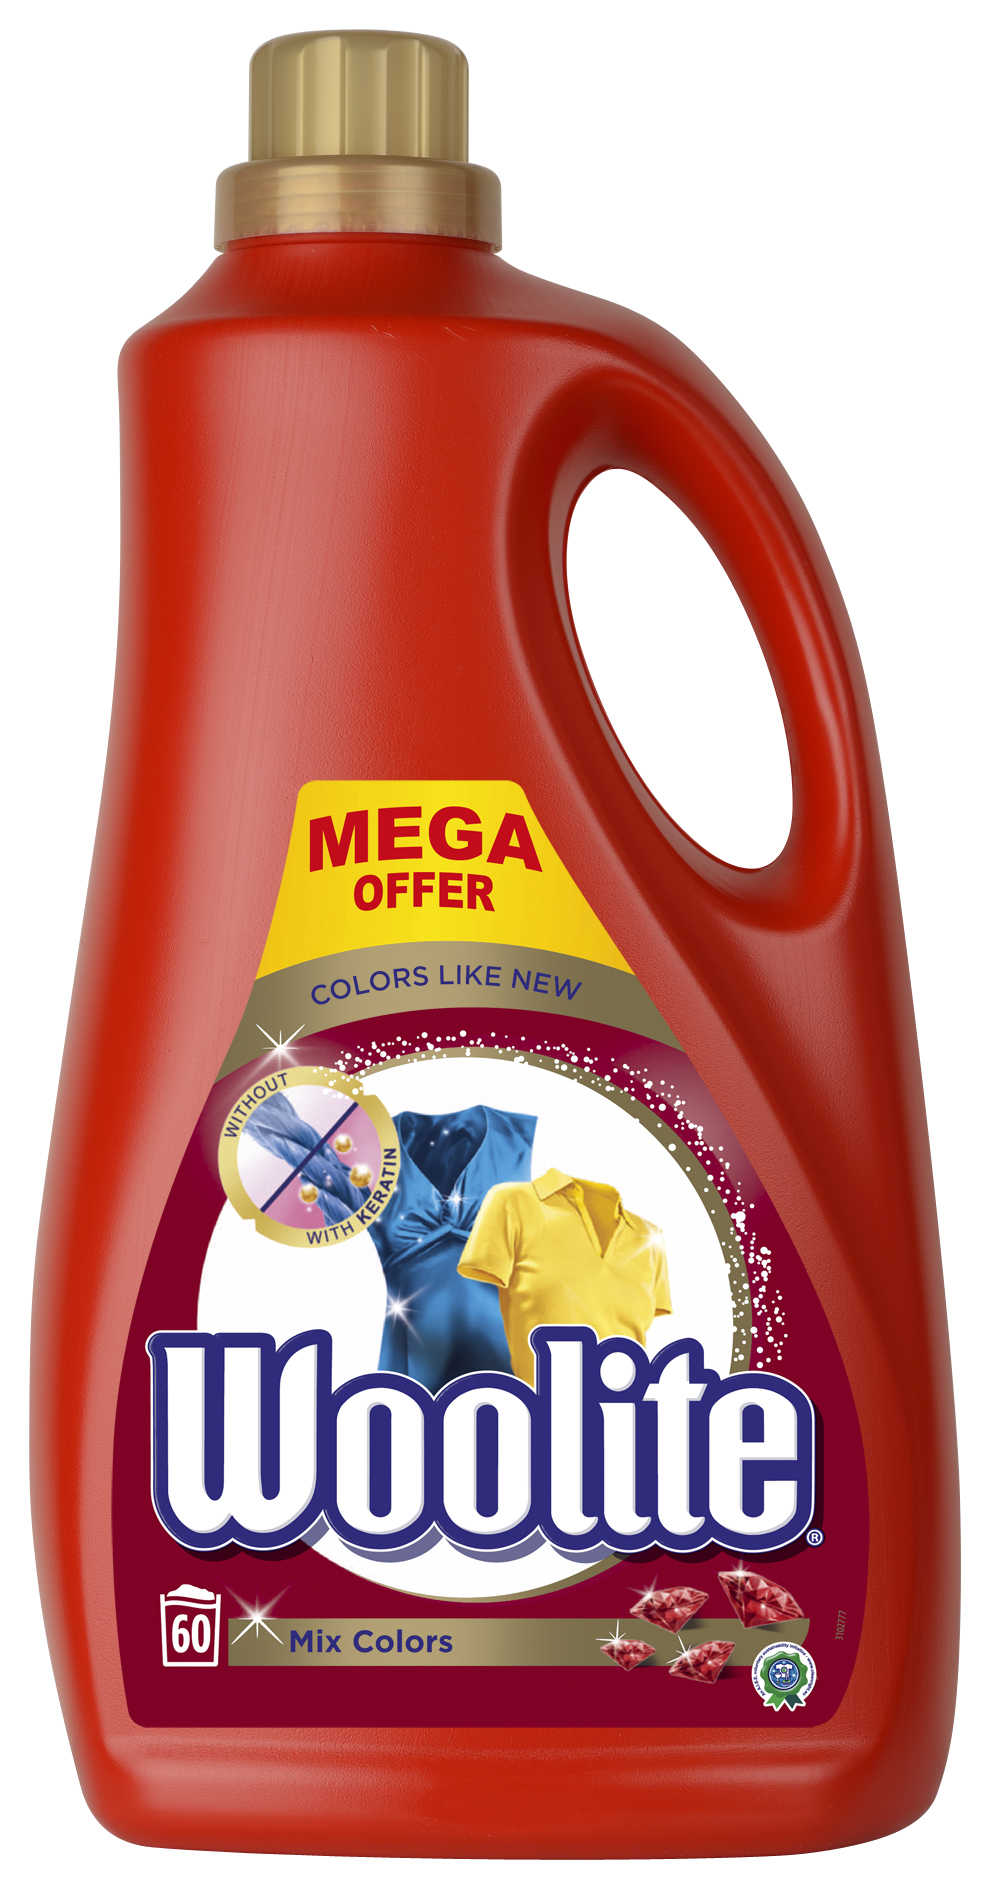 WOOLITE Mix Colors 3.6 l (60 dávek) – prací gel